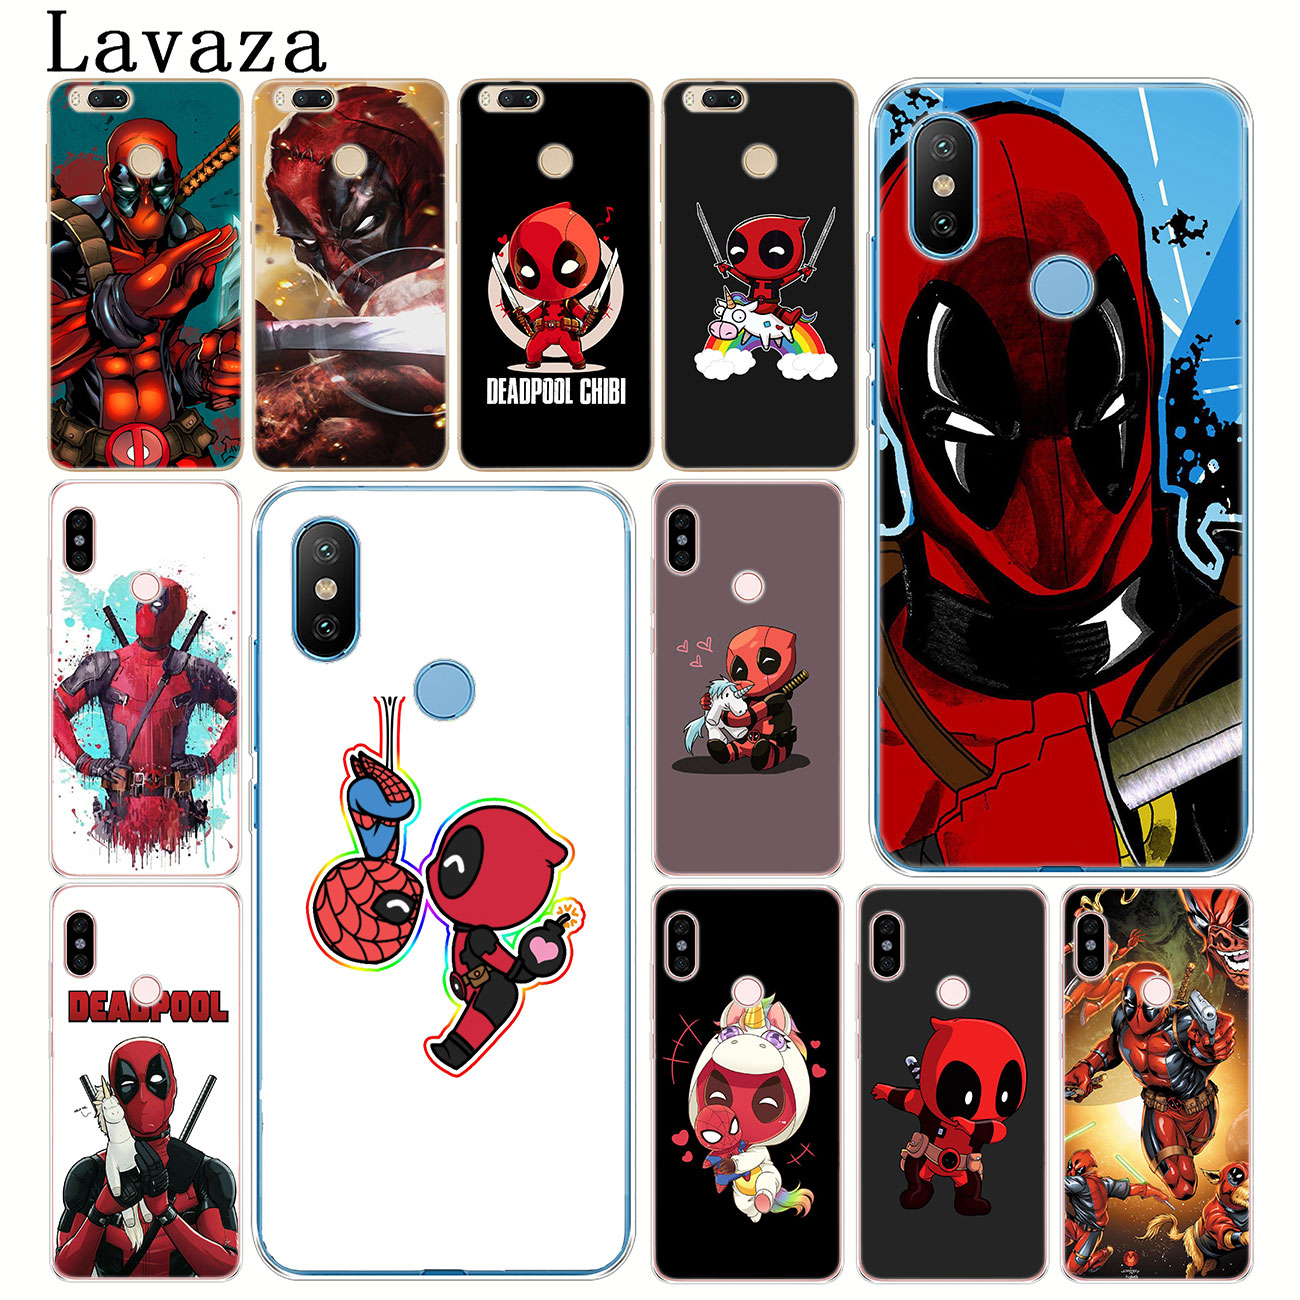 Lavaza <font><b>Marvel</b></font> Comics Deadpool Hard Phone Shell <font><b>Case</b></font> for <font><b>Xiaomi</b></font> <font><b>Redmi</b></font> 8A 7A 6A 5A 4A K20 <font><b>Note</b></font> 8 7 5 6 Pro <font><b>4</b></font> 4X Cover image